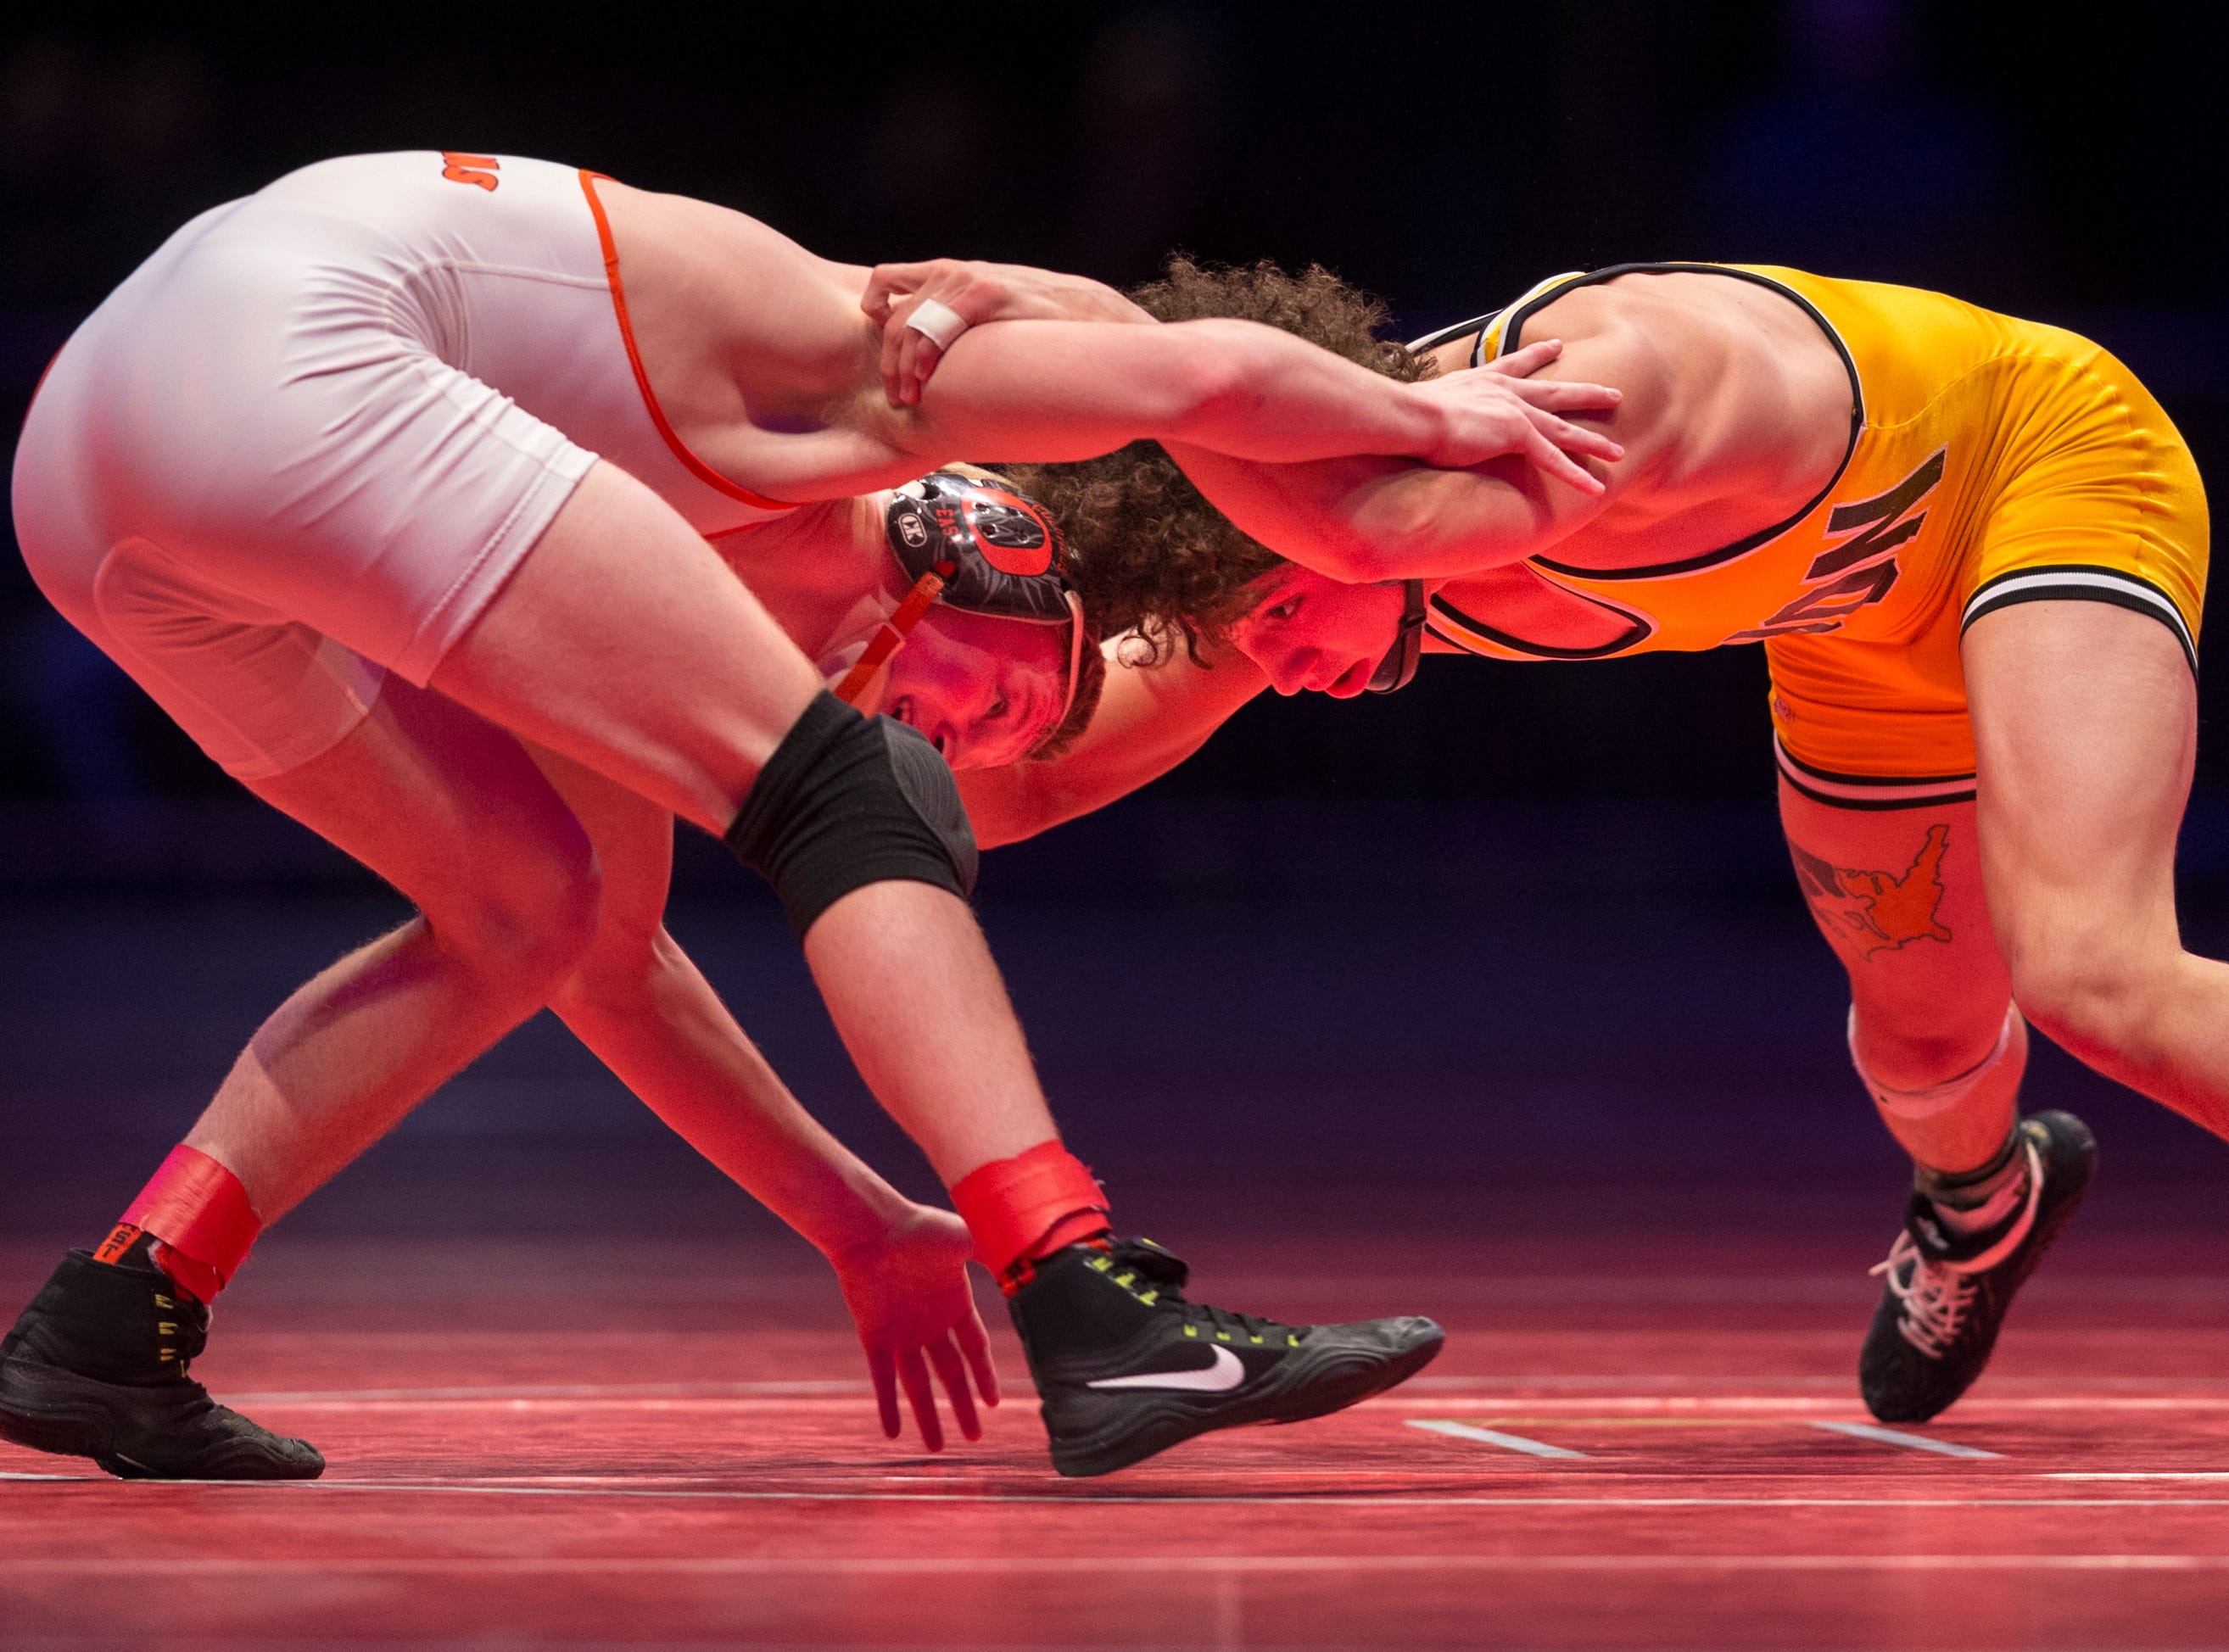 Avon High School's Asa Garcia, right, wrestles with Columbus East High School's Cayden Rooks in the 126 lb. class during the championship round of the 2018 IHSAA Wrestling State Tournament, Saturday, February 18, 2018, at Bankers Life Fieldhouse in Indianapolis.